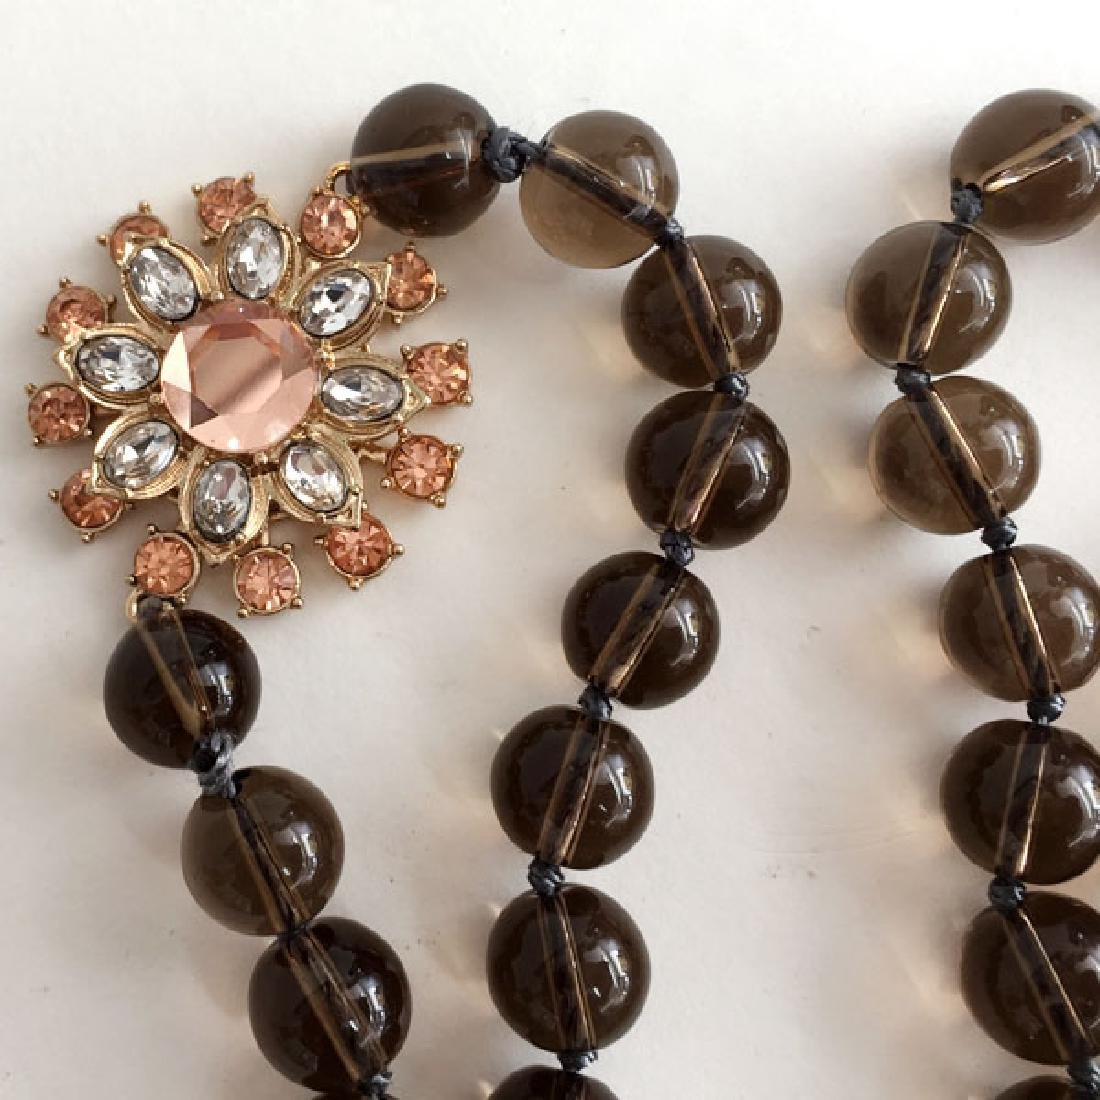 Smokey Quartz glass beads knotted necklace with gold - 2